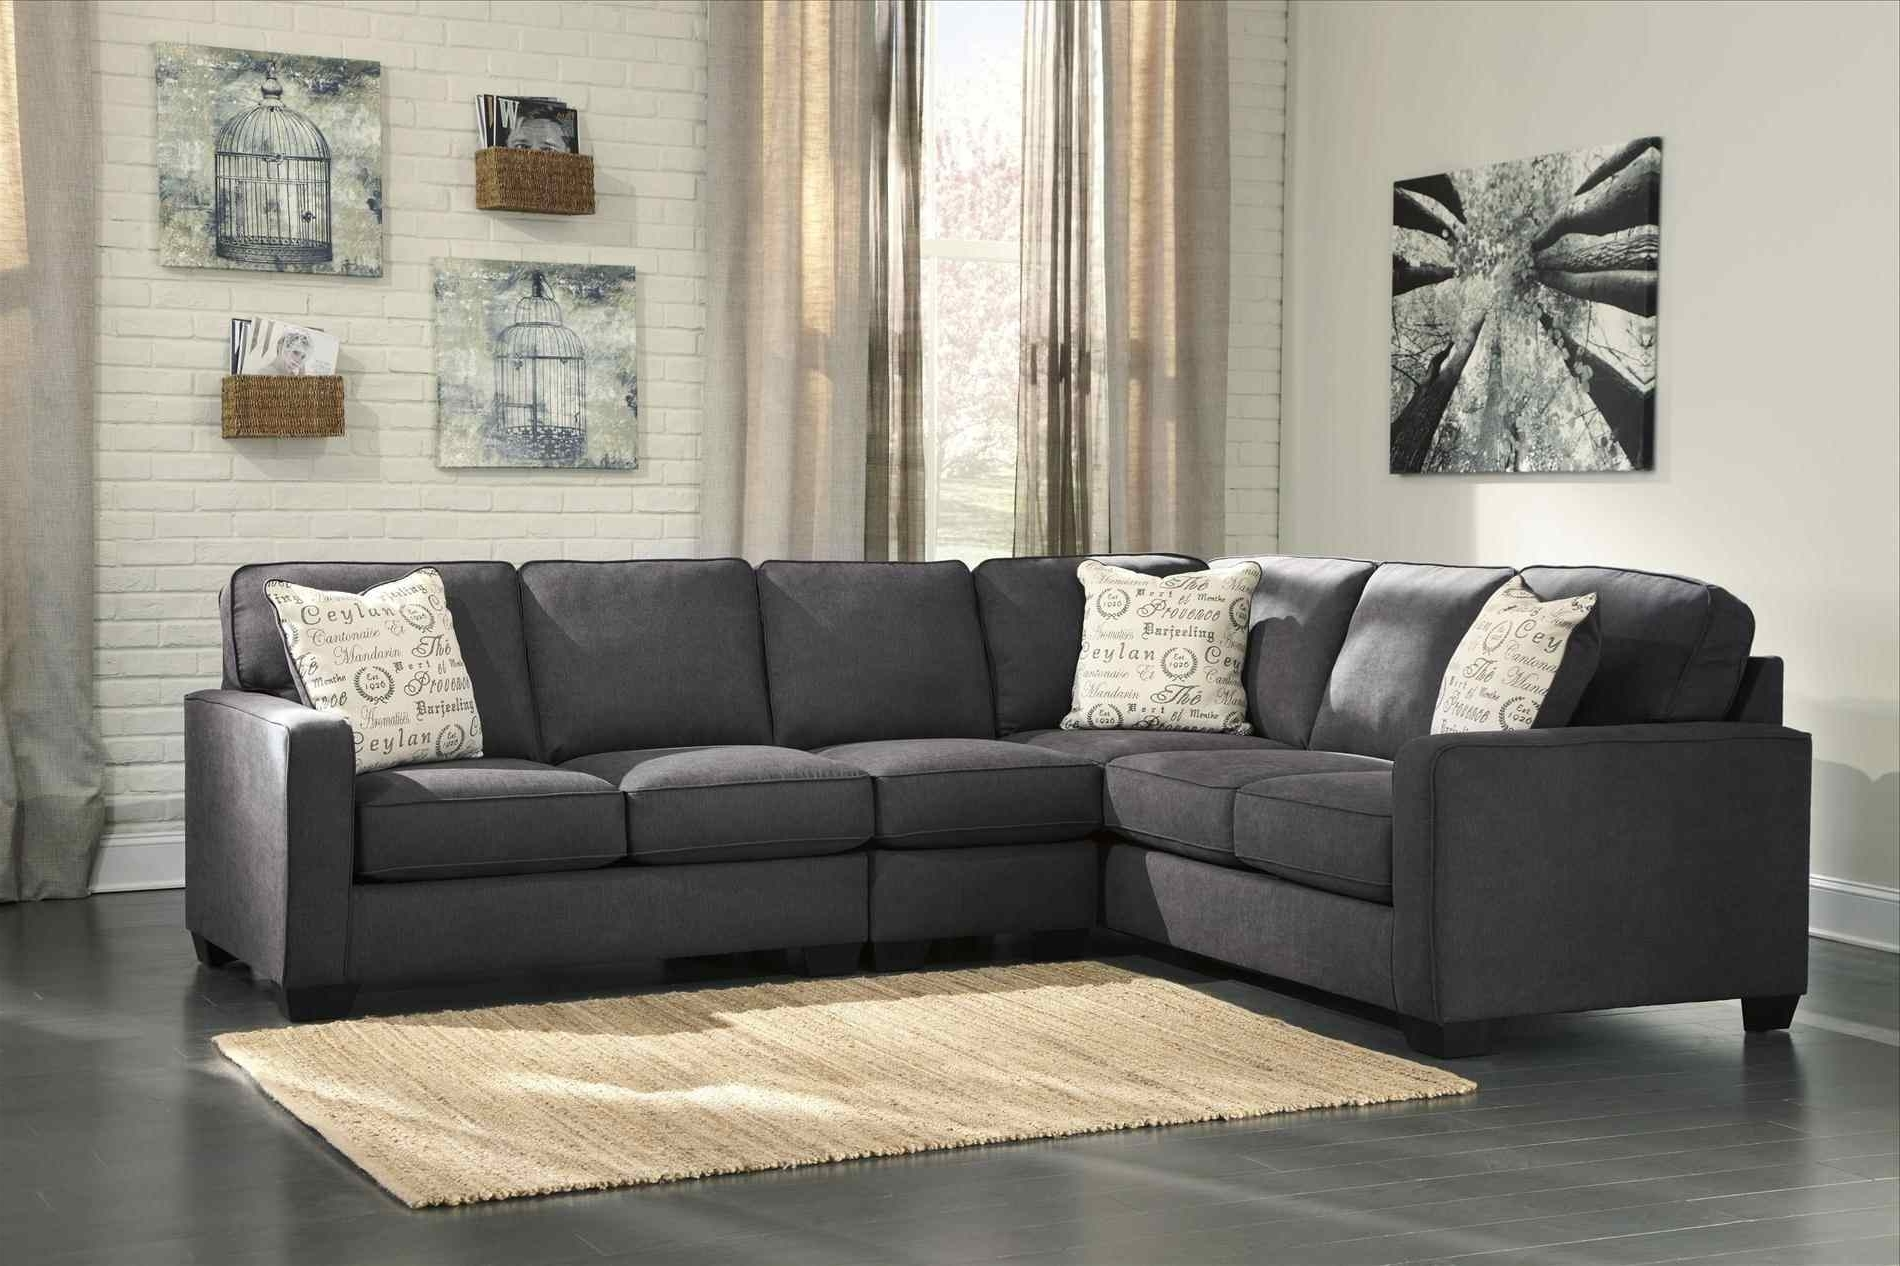 Well Known Simmons Chaise Sofas With Regard To Sofa : Simmons Chaise Gray Sectional Sofa With Cheap S Under (Gallery 15 of 20)